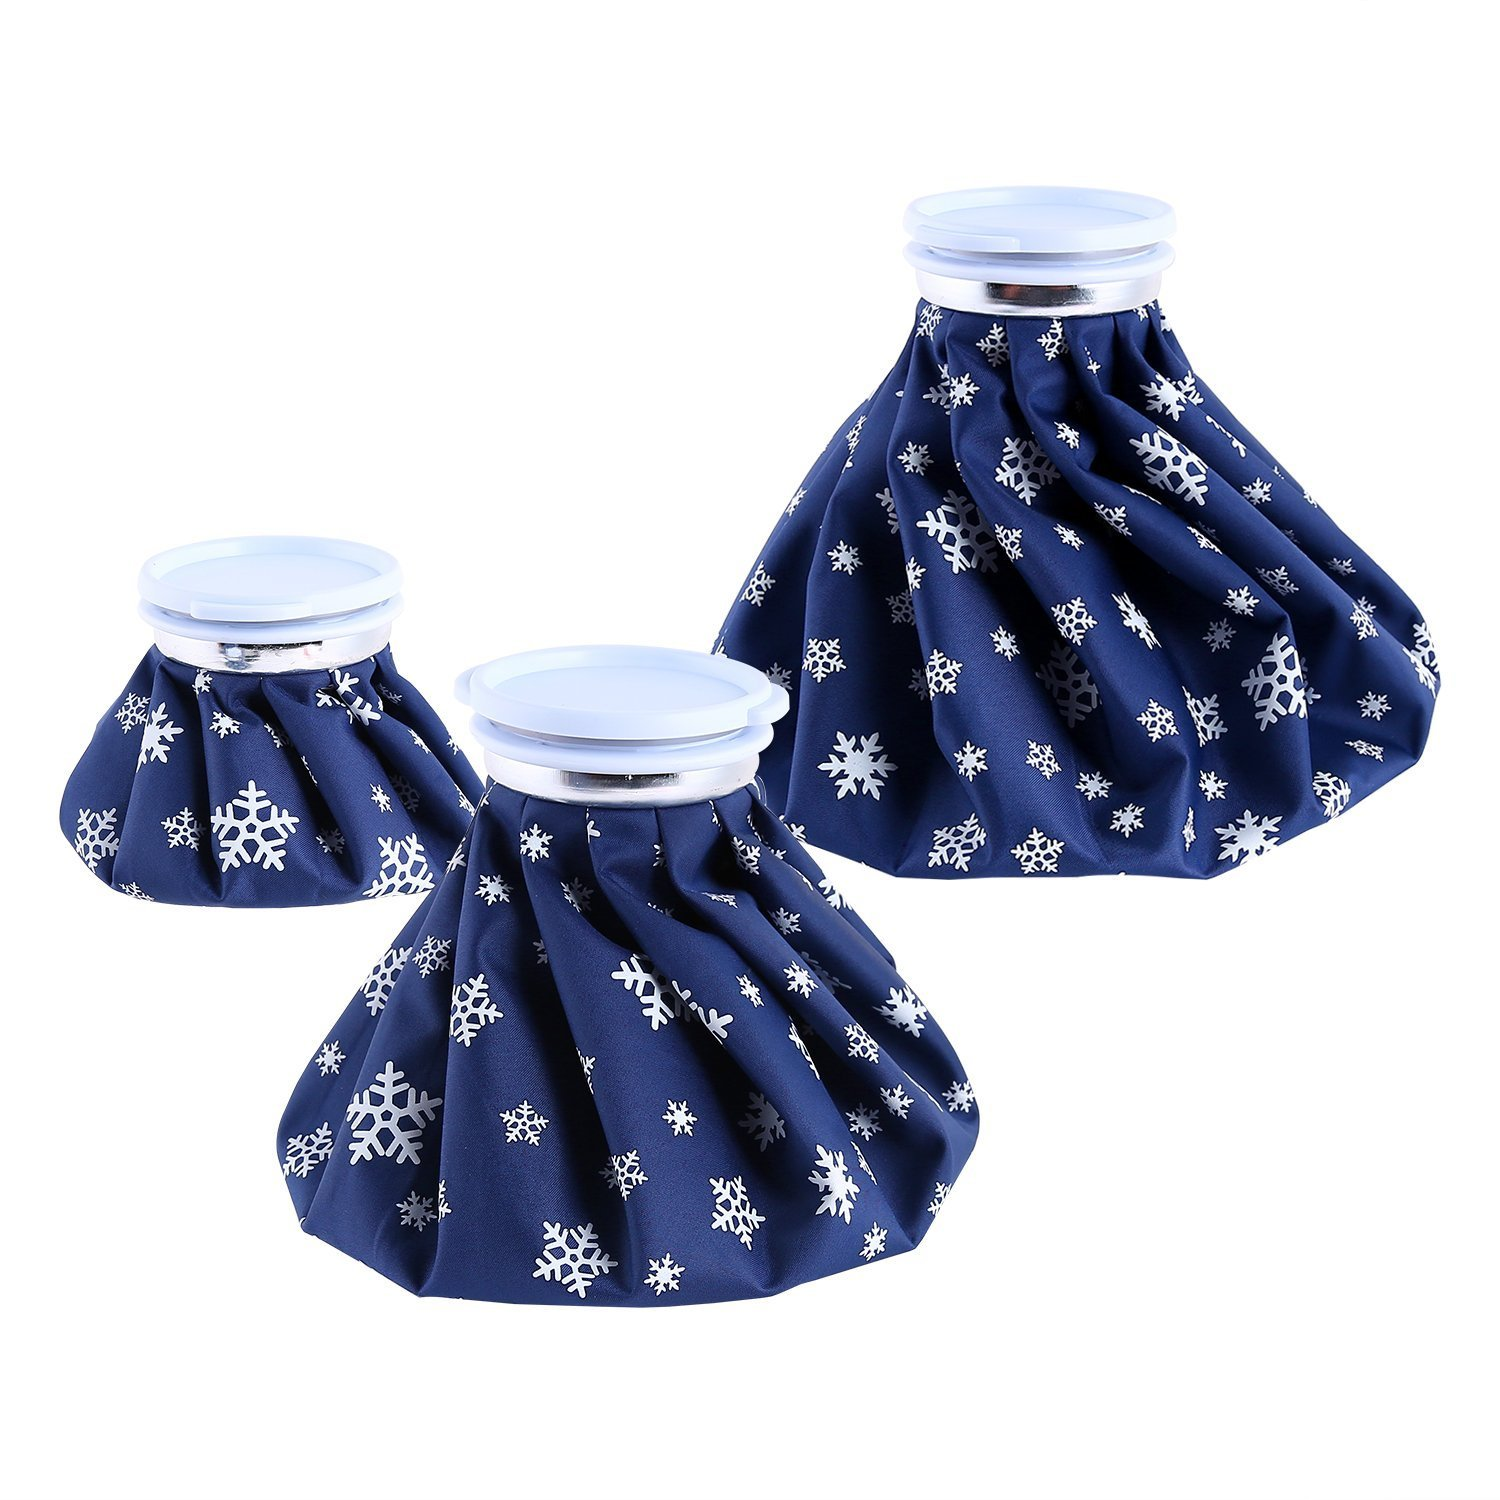 Ohuhu Hot Cold Ice Pack Reusable Ice Bag 3 Pack [11'' 9'' 6''] Hot Cold Therapy For Knee Leg Injury